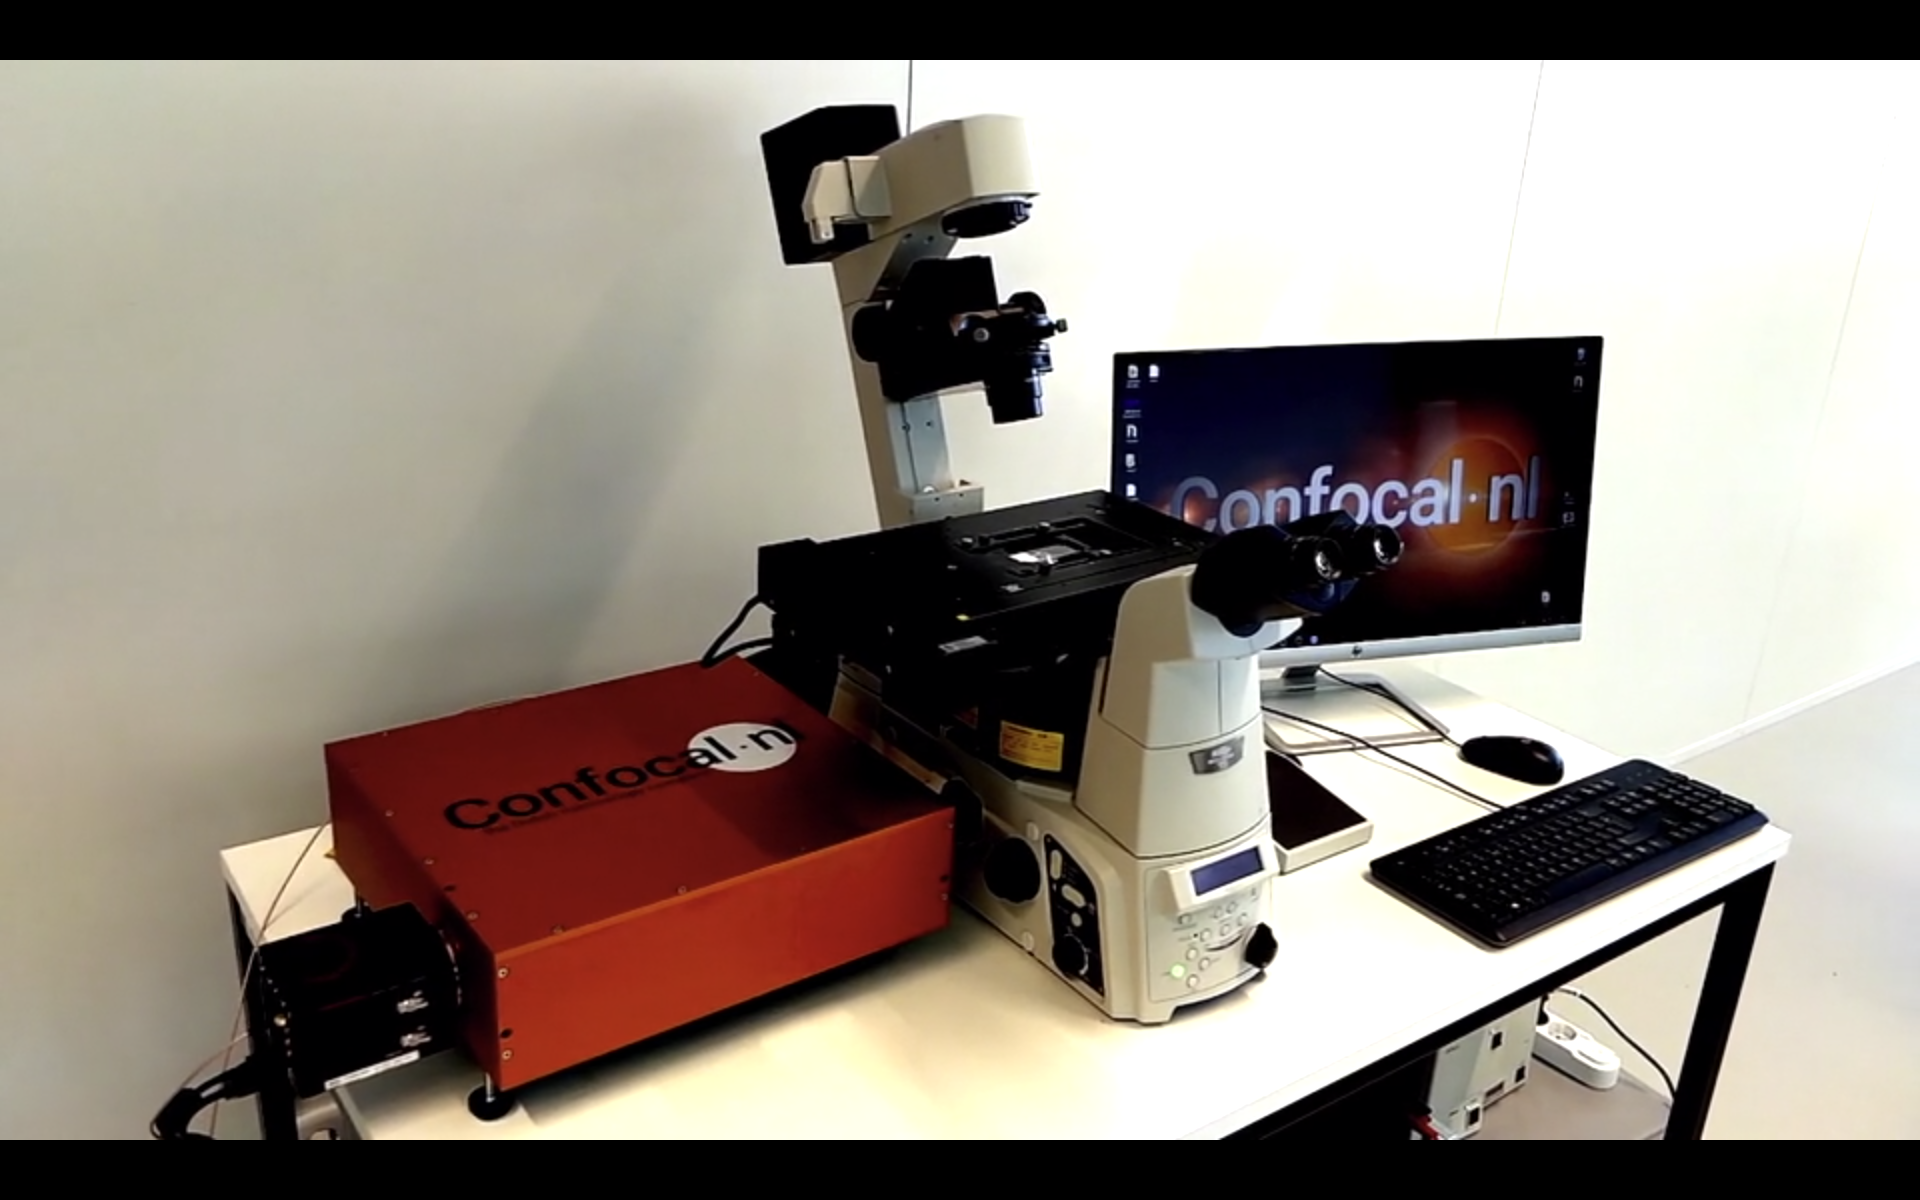 Confocal Solutions